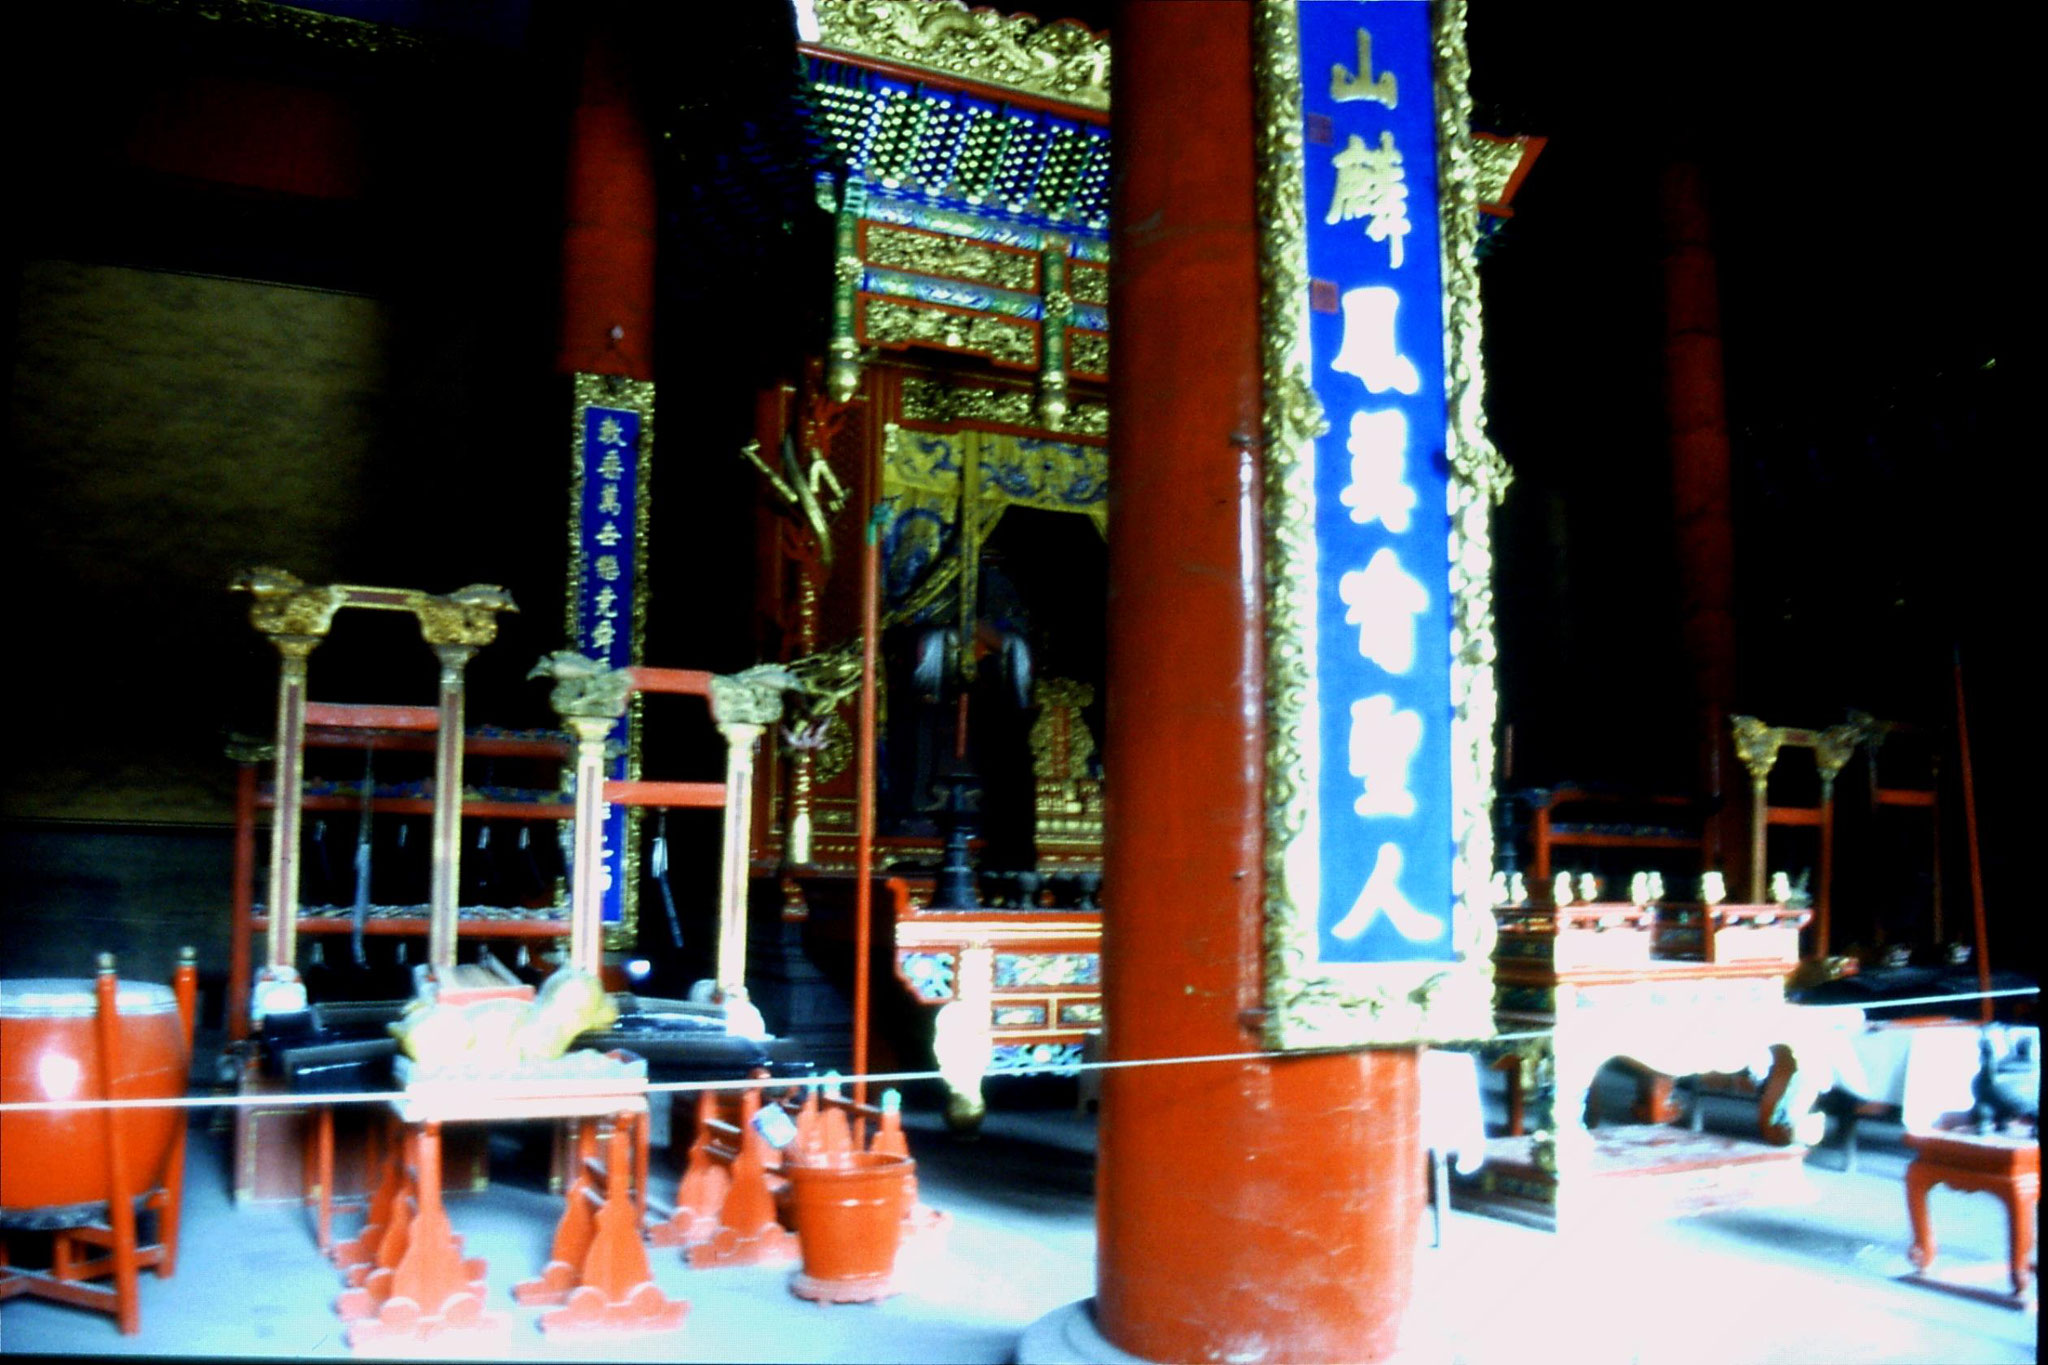 21/2/1989: 36 Qufu musical instruments in Dacheng Hall